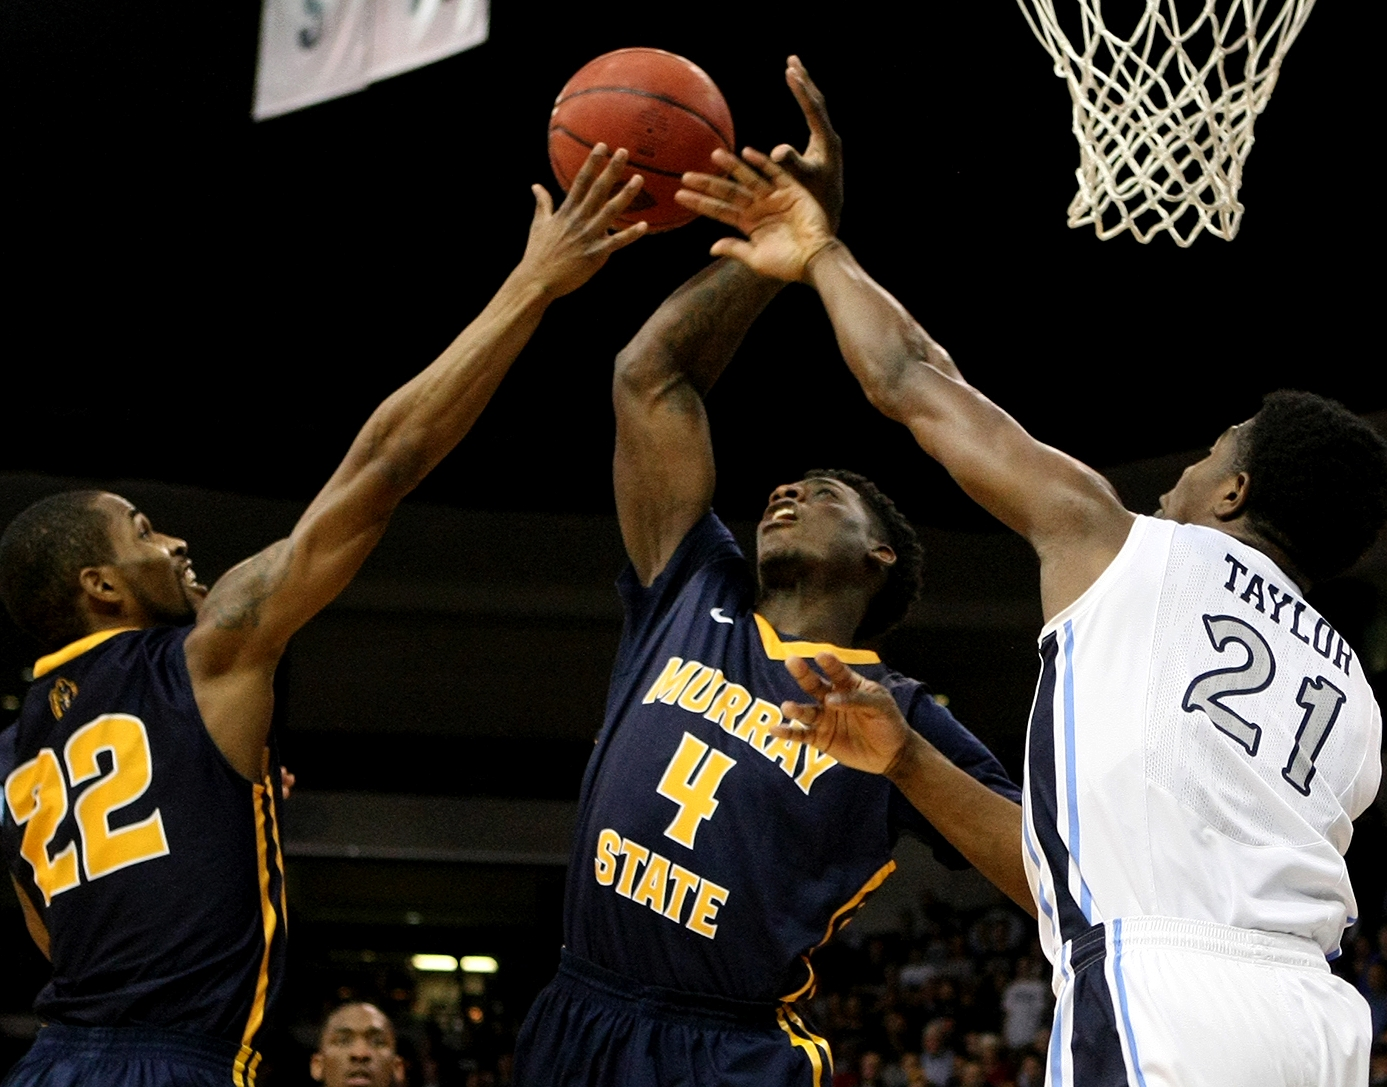 Murray State's T.J. Sapp (22), Jarvis Williams (4) battle Old Dominion's Denzell Taylor for a loose ball during the first half of an NCAA college basketball game in the National Invitation Tournament, Wednesday, March 25, 2015 in Norfolk, Va.  (AP Photo/Jason Hirschfeld)